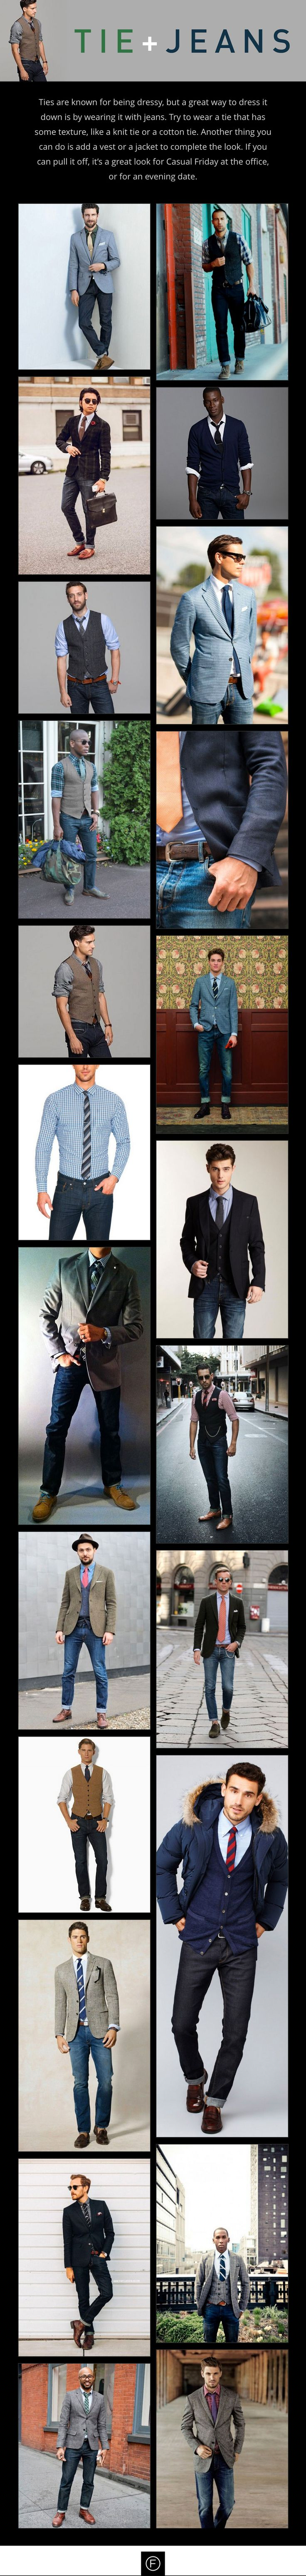 Ties are known for being dressy, but a great way to dress it down is by wearing it with jeans. Try to wear a tie that has some texture, like a knit tie or a cotton tie. Another thing you can do is add a vest or a jacket to complete the look. http://famousoutfits.com/collections/tie-jeans/ #tie #jeans #mensfashion